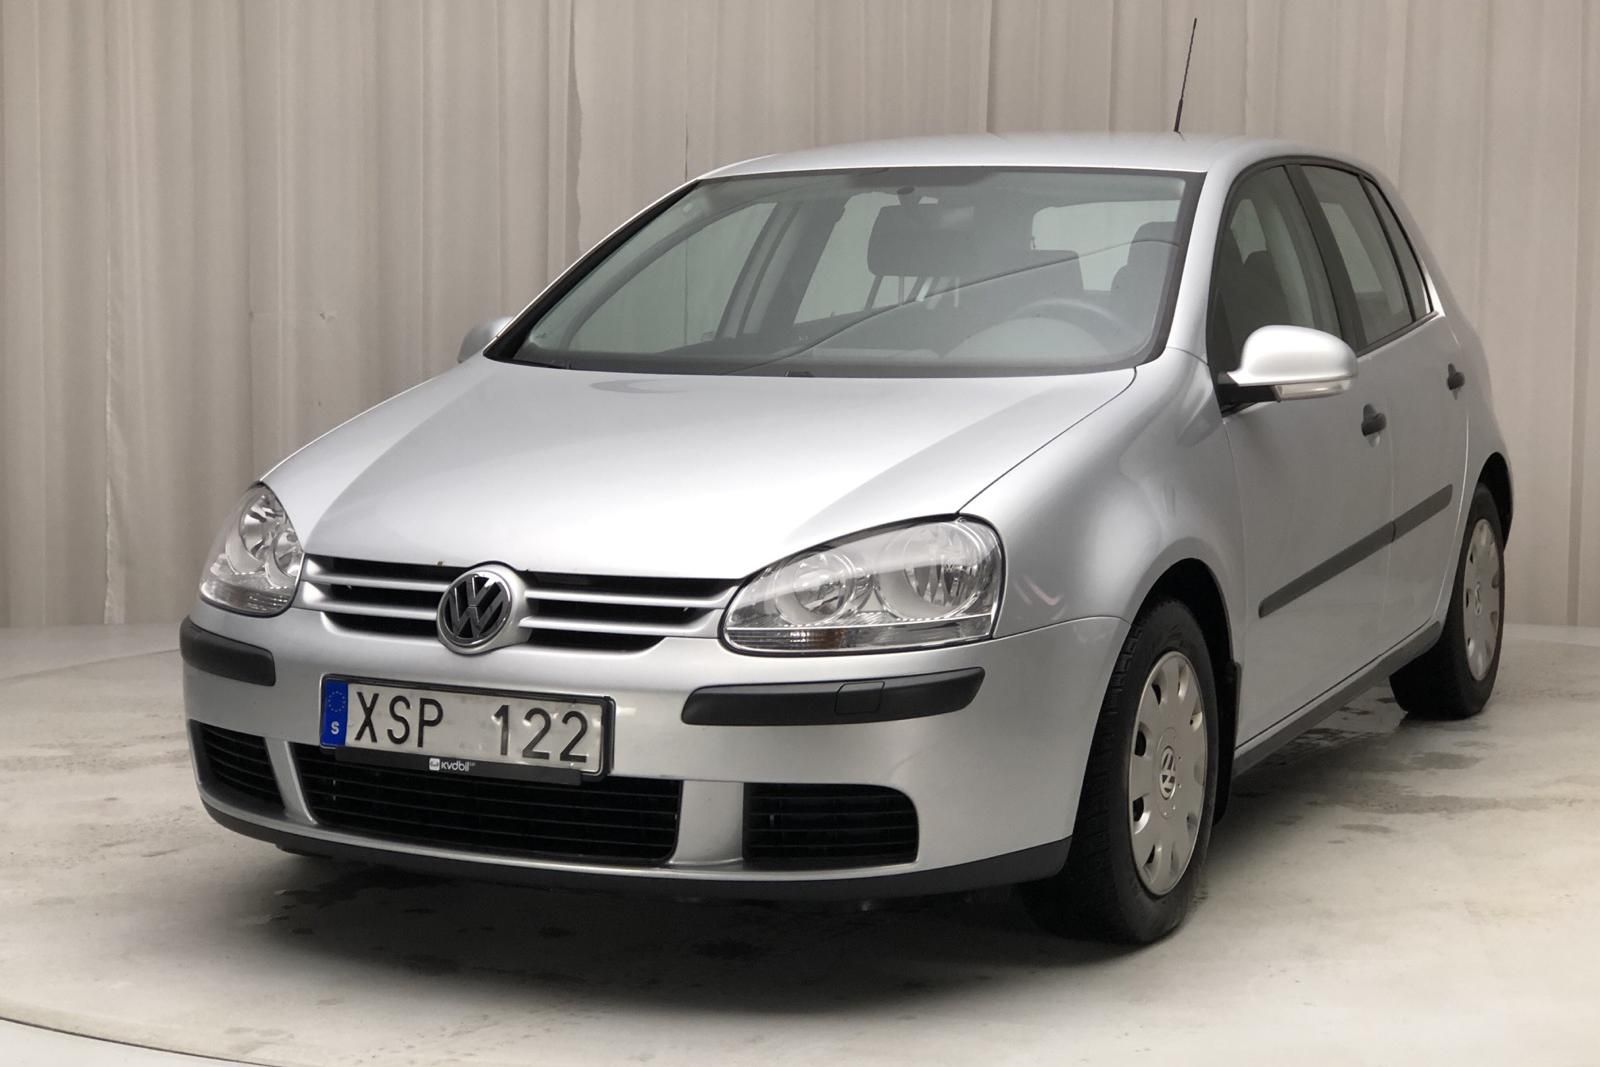 VW Golf A5 1.6 5dr (102HK)